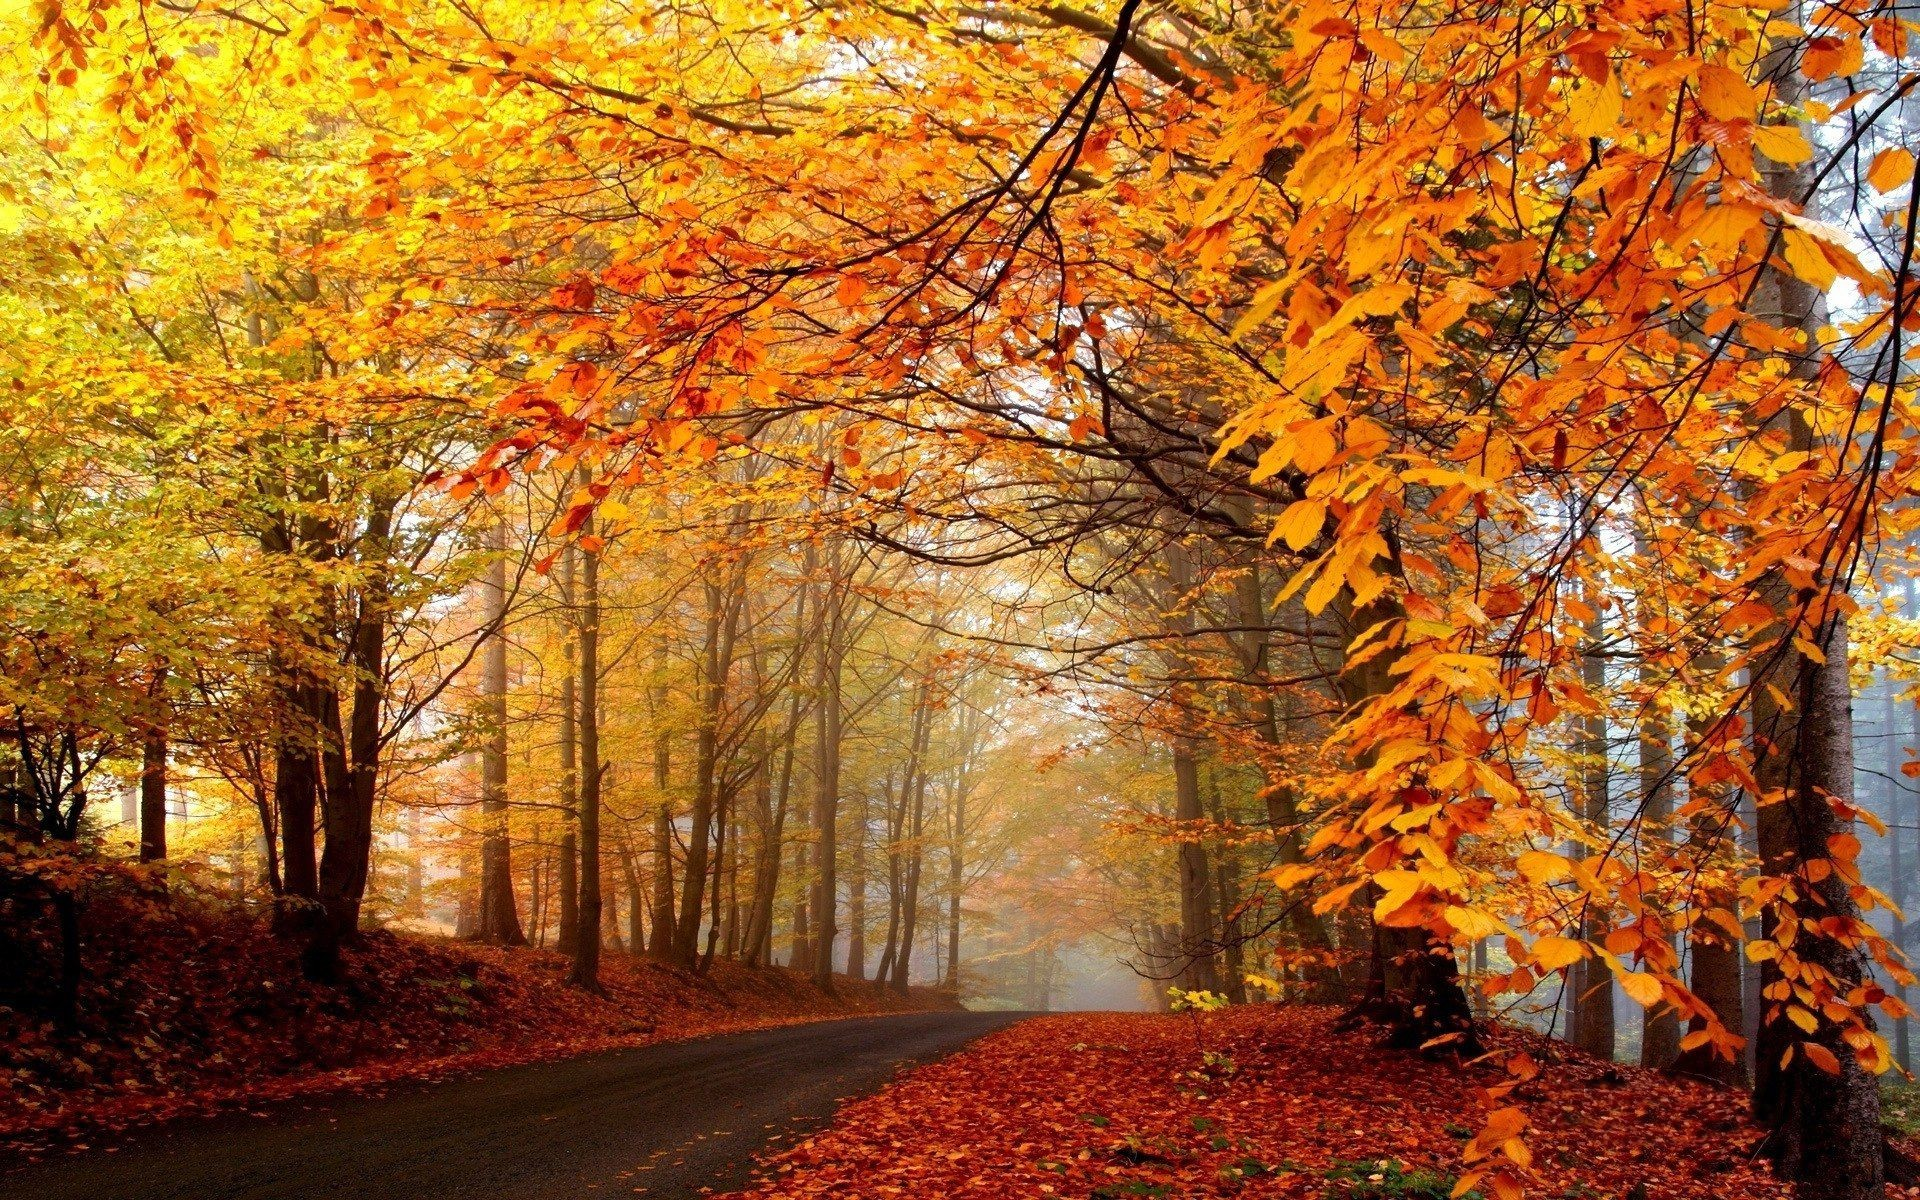 Autumn Scenery Wallpaper (57+ Images